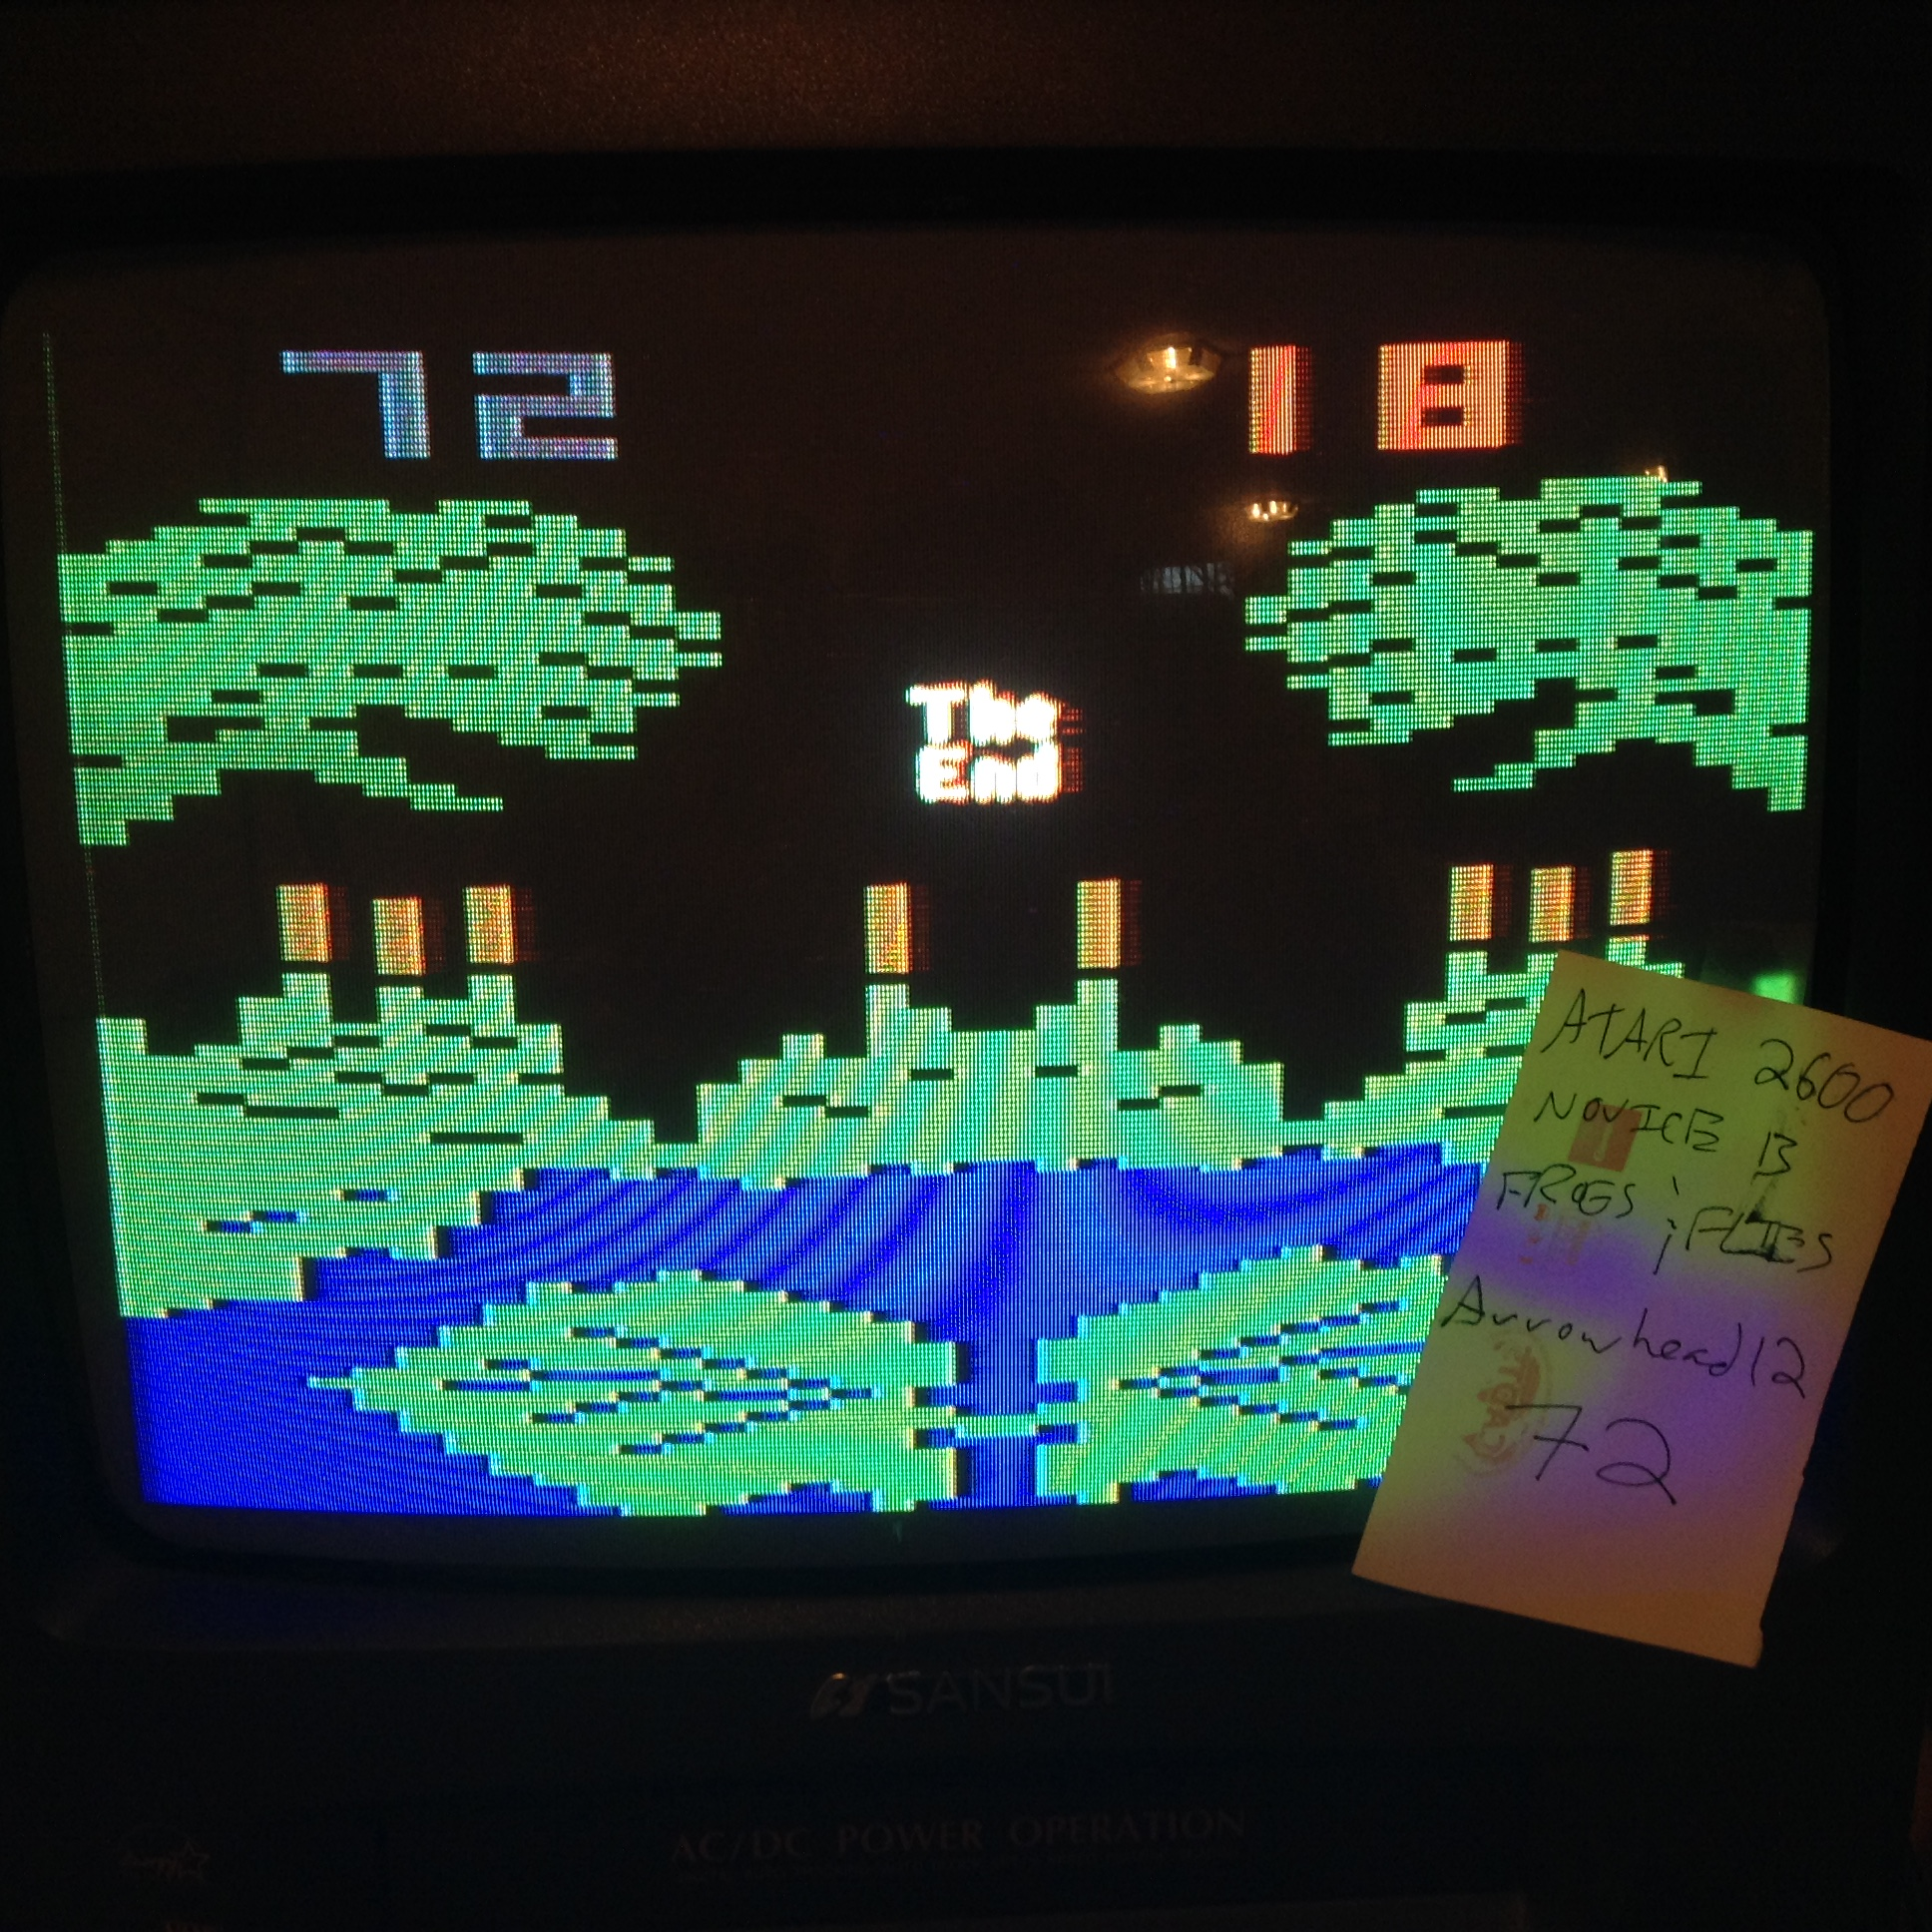 Arrowhead12: Frogs and Flies (Atari 2600 Novice/B) 72 points on 2018-11-04 17:22:59